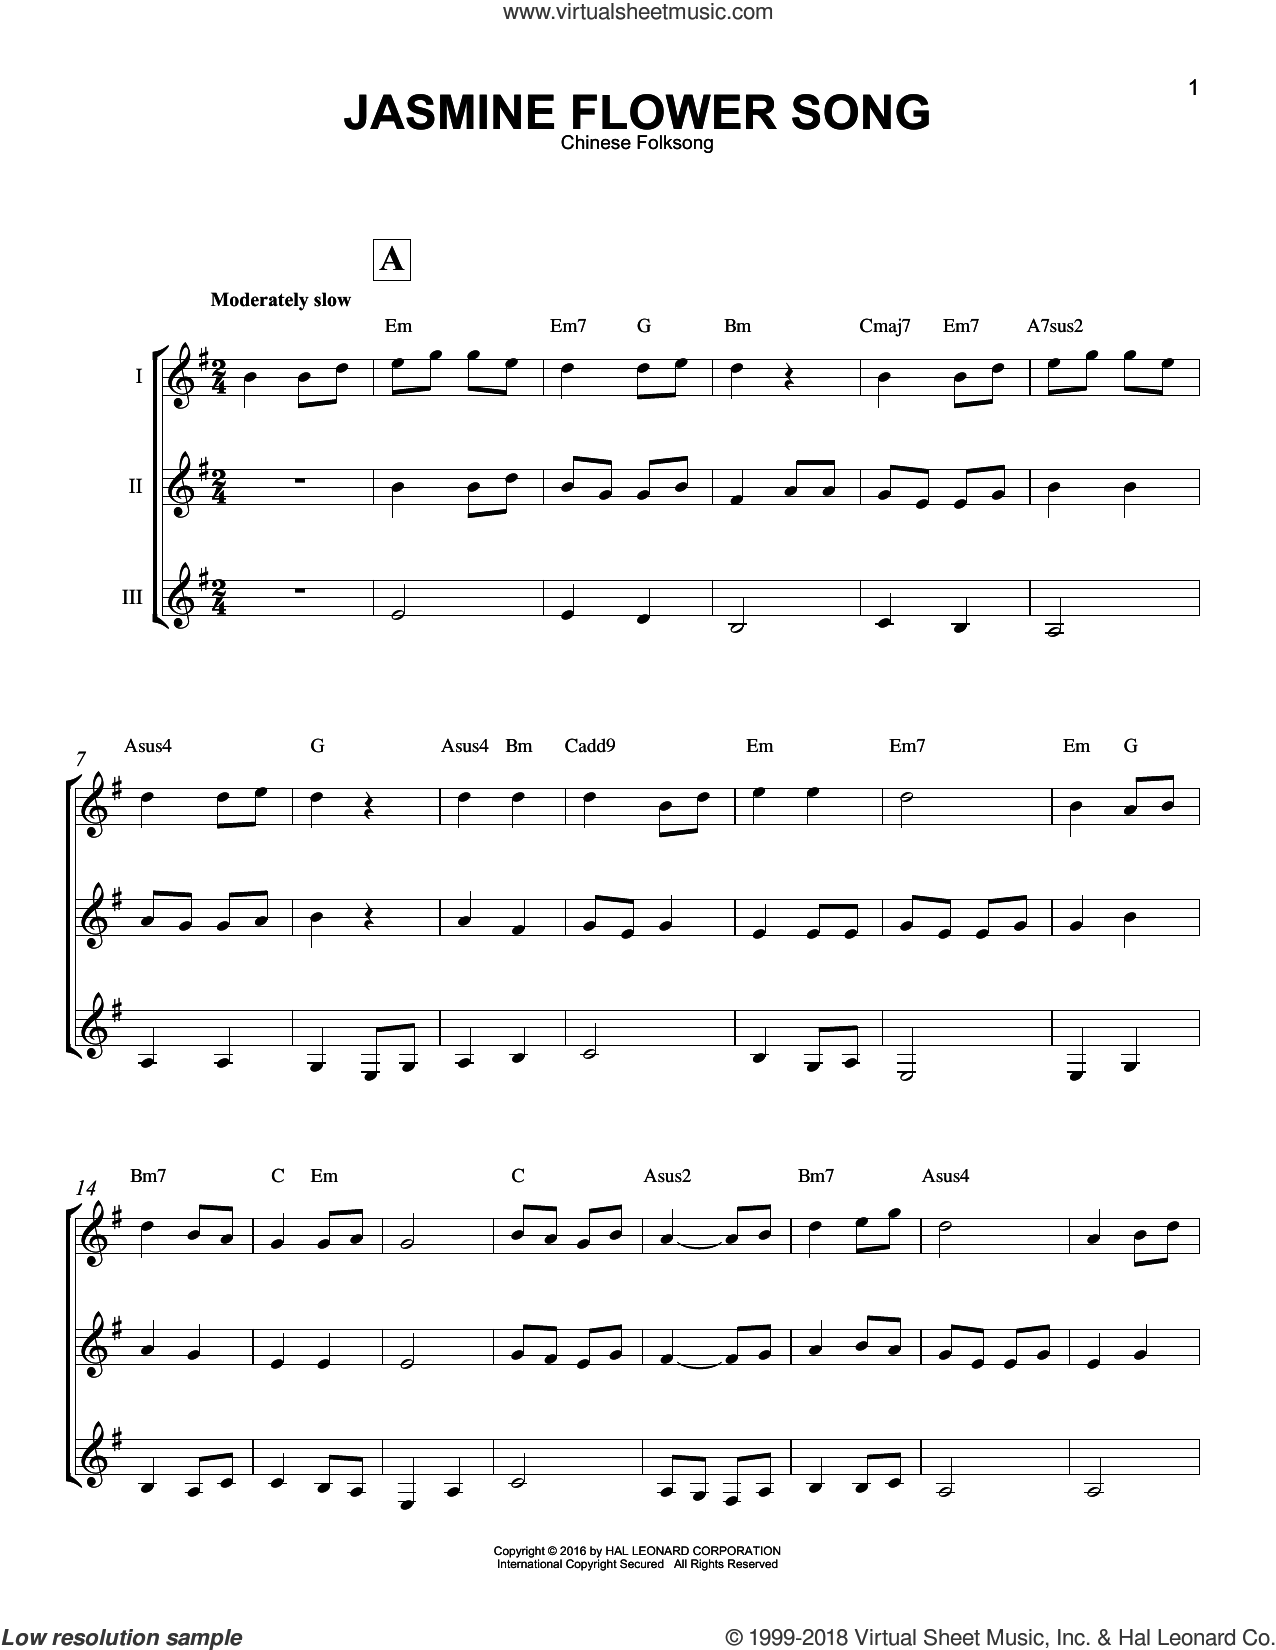 Jasmine Flower Song sheet music for guitar ensemble, intermediate skill level